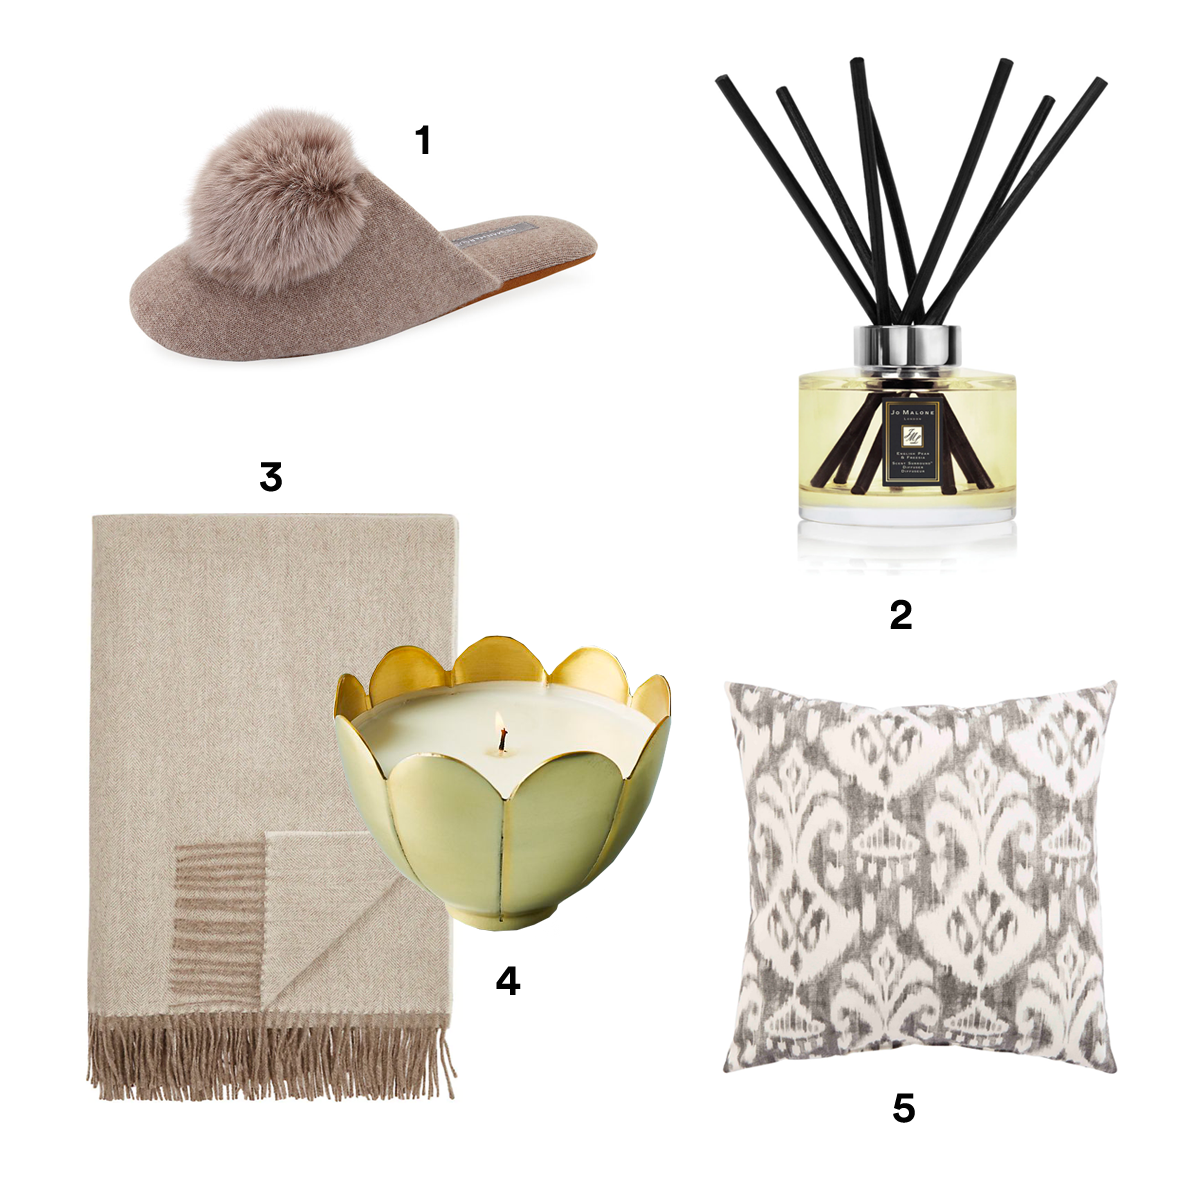 1) MINNIE ROSE Cashmere Fur-Pompom Slippers, available at Neiman Marcus. 2) JO MALONE LONDON English Pear & Freesia Diffuser, available at Neiman Marcus. 3) ALICIA ADAMS ALPACA Herringbone Alpaca Throw, available at Barneys New York. 4) ANTHROPOLOGIE Metallic Flower Candle. 5) JAIPUR Veranda Accent Pillow, available at Nordstrom.